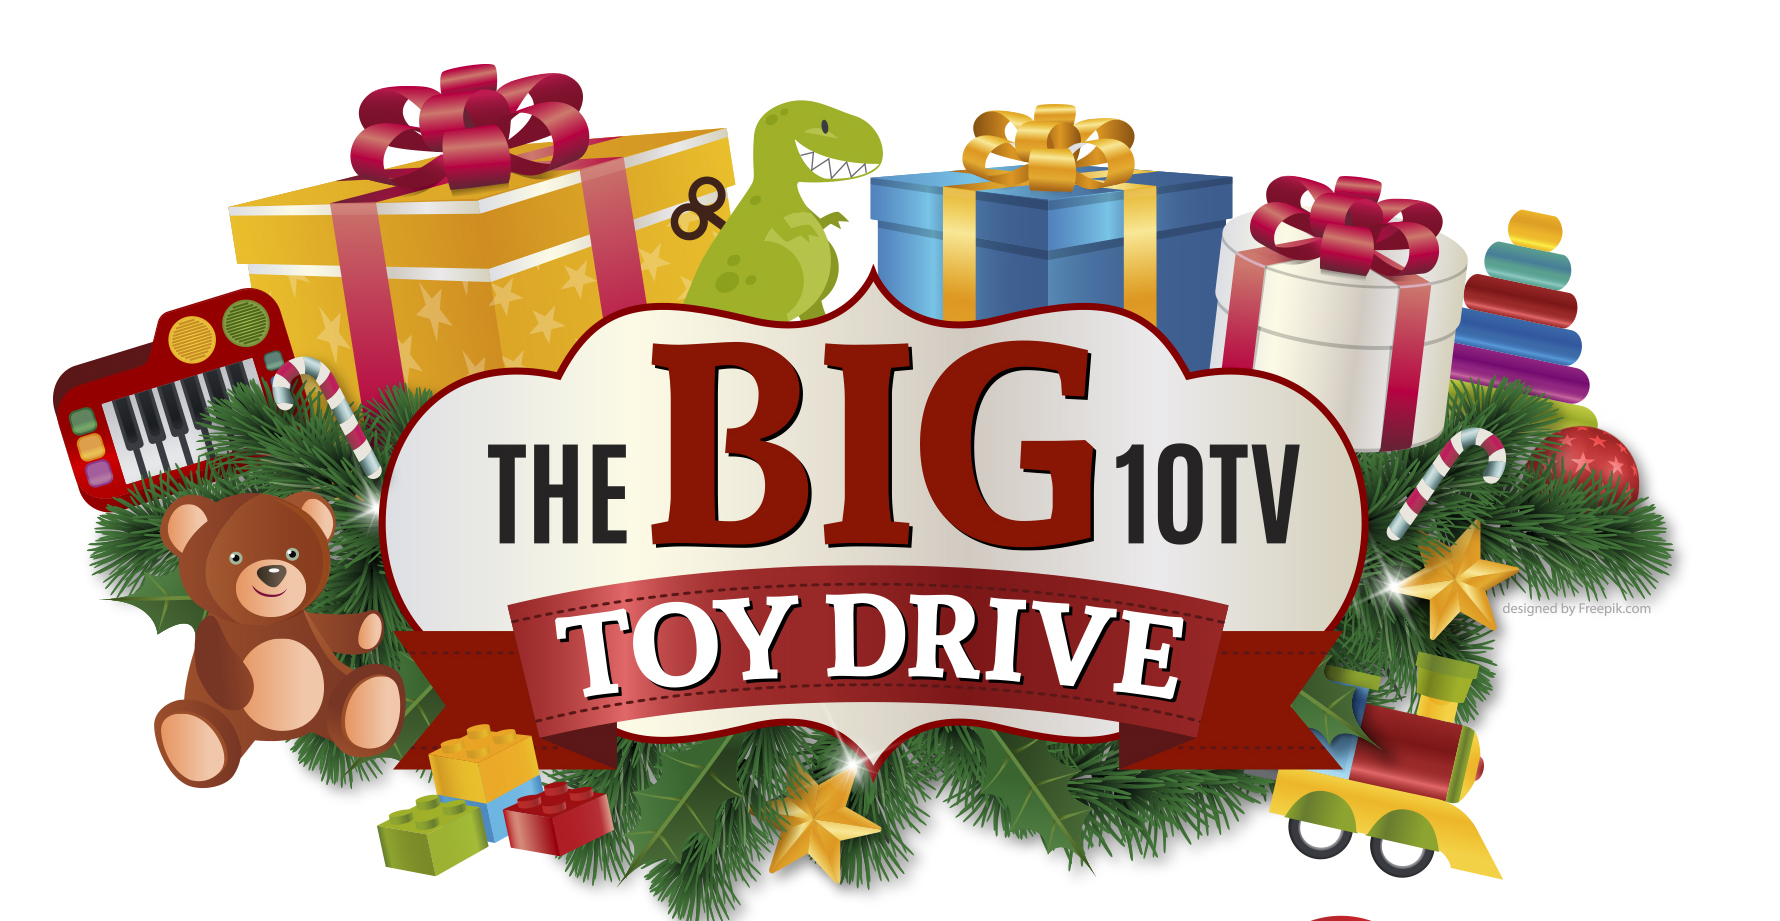 Big 10-TV Toy Drive